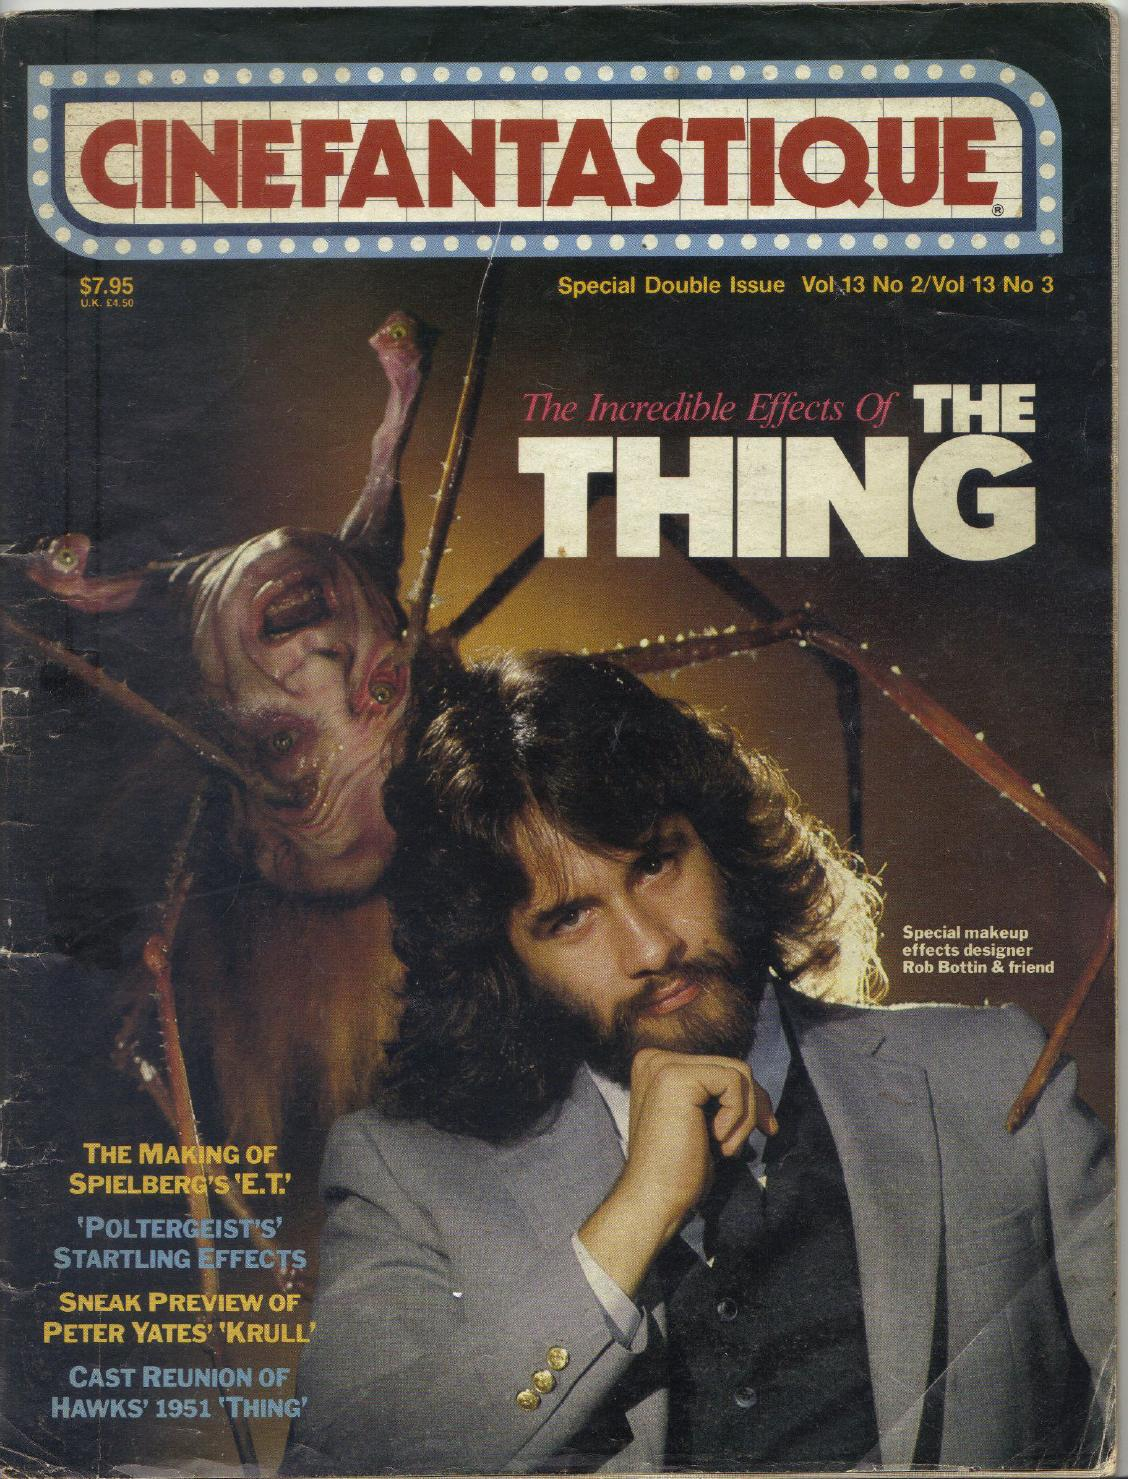 Rob Bottin on the cover of Cinefantastique magazine